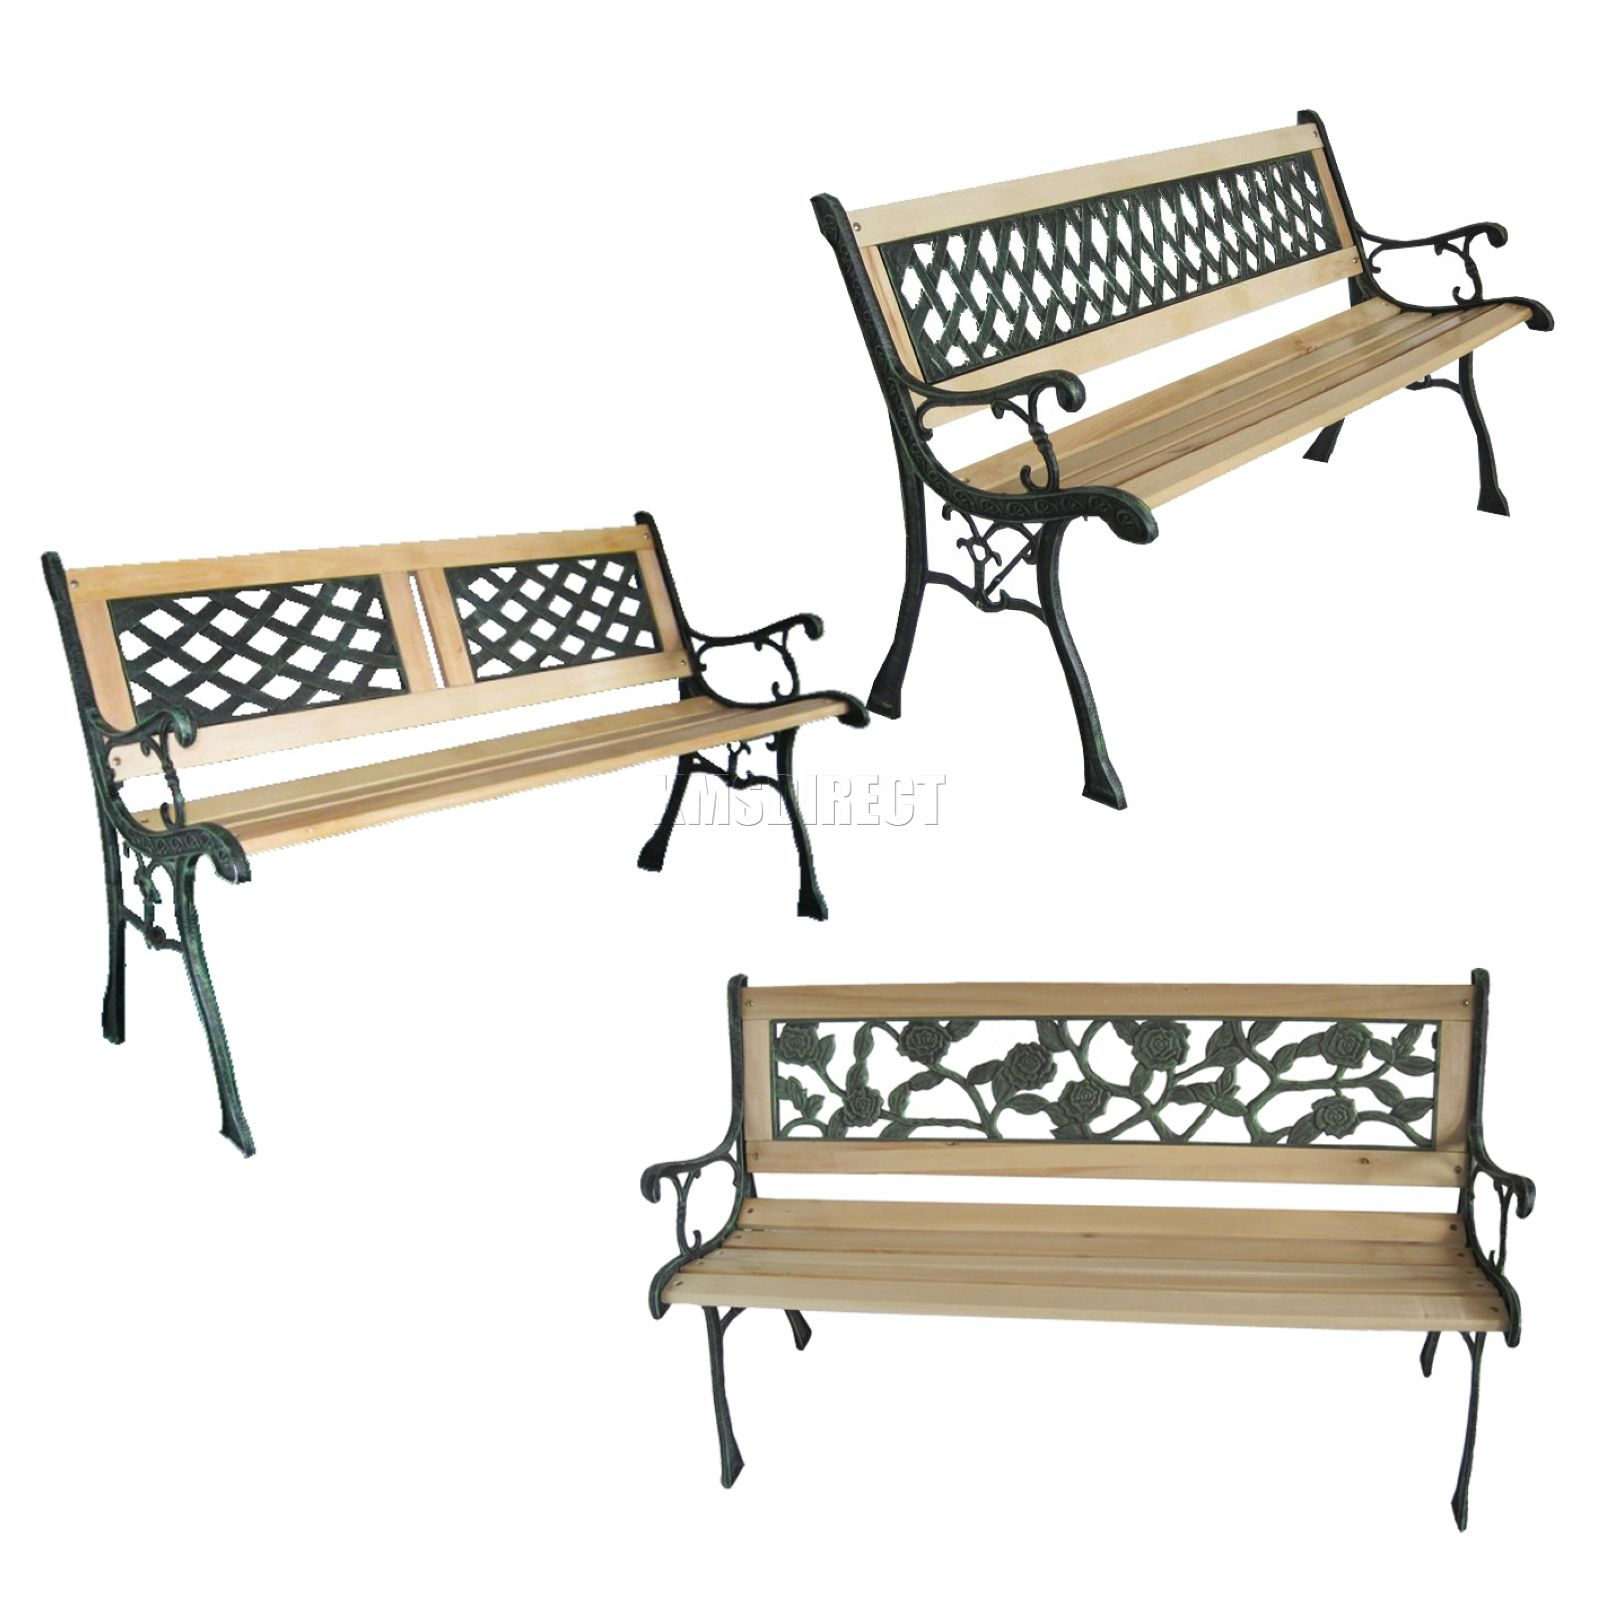 Outdoor furniture wooden 3 seater garden bench with cast Cast iron garden furniture